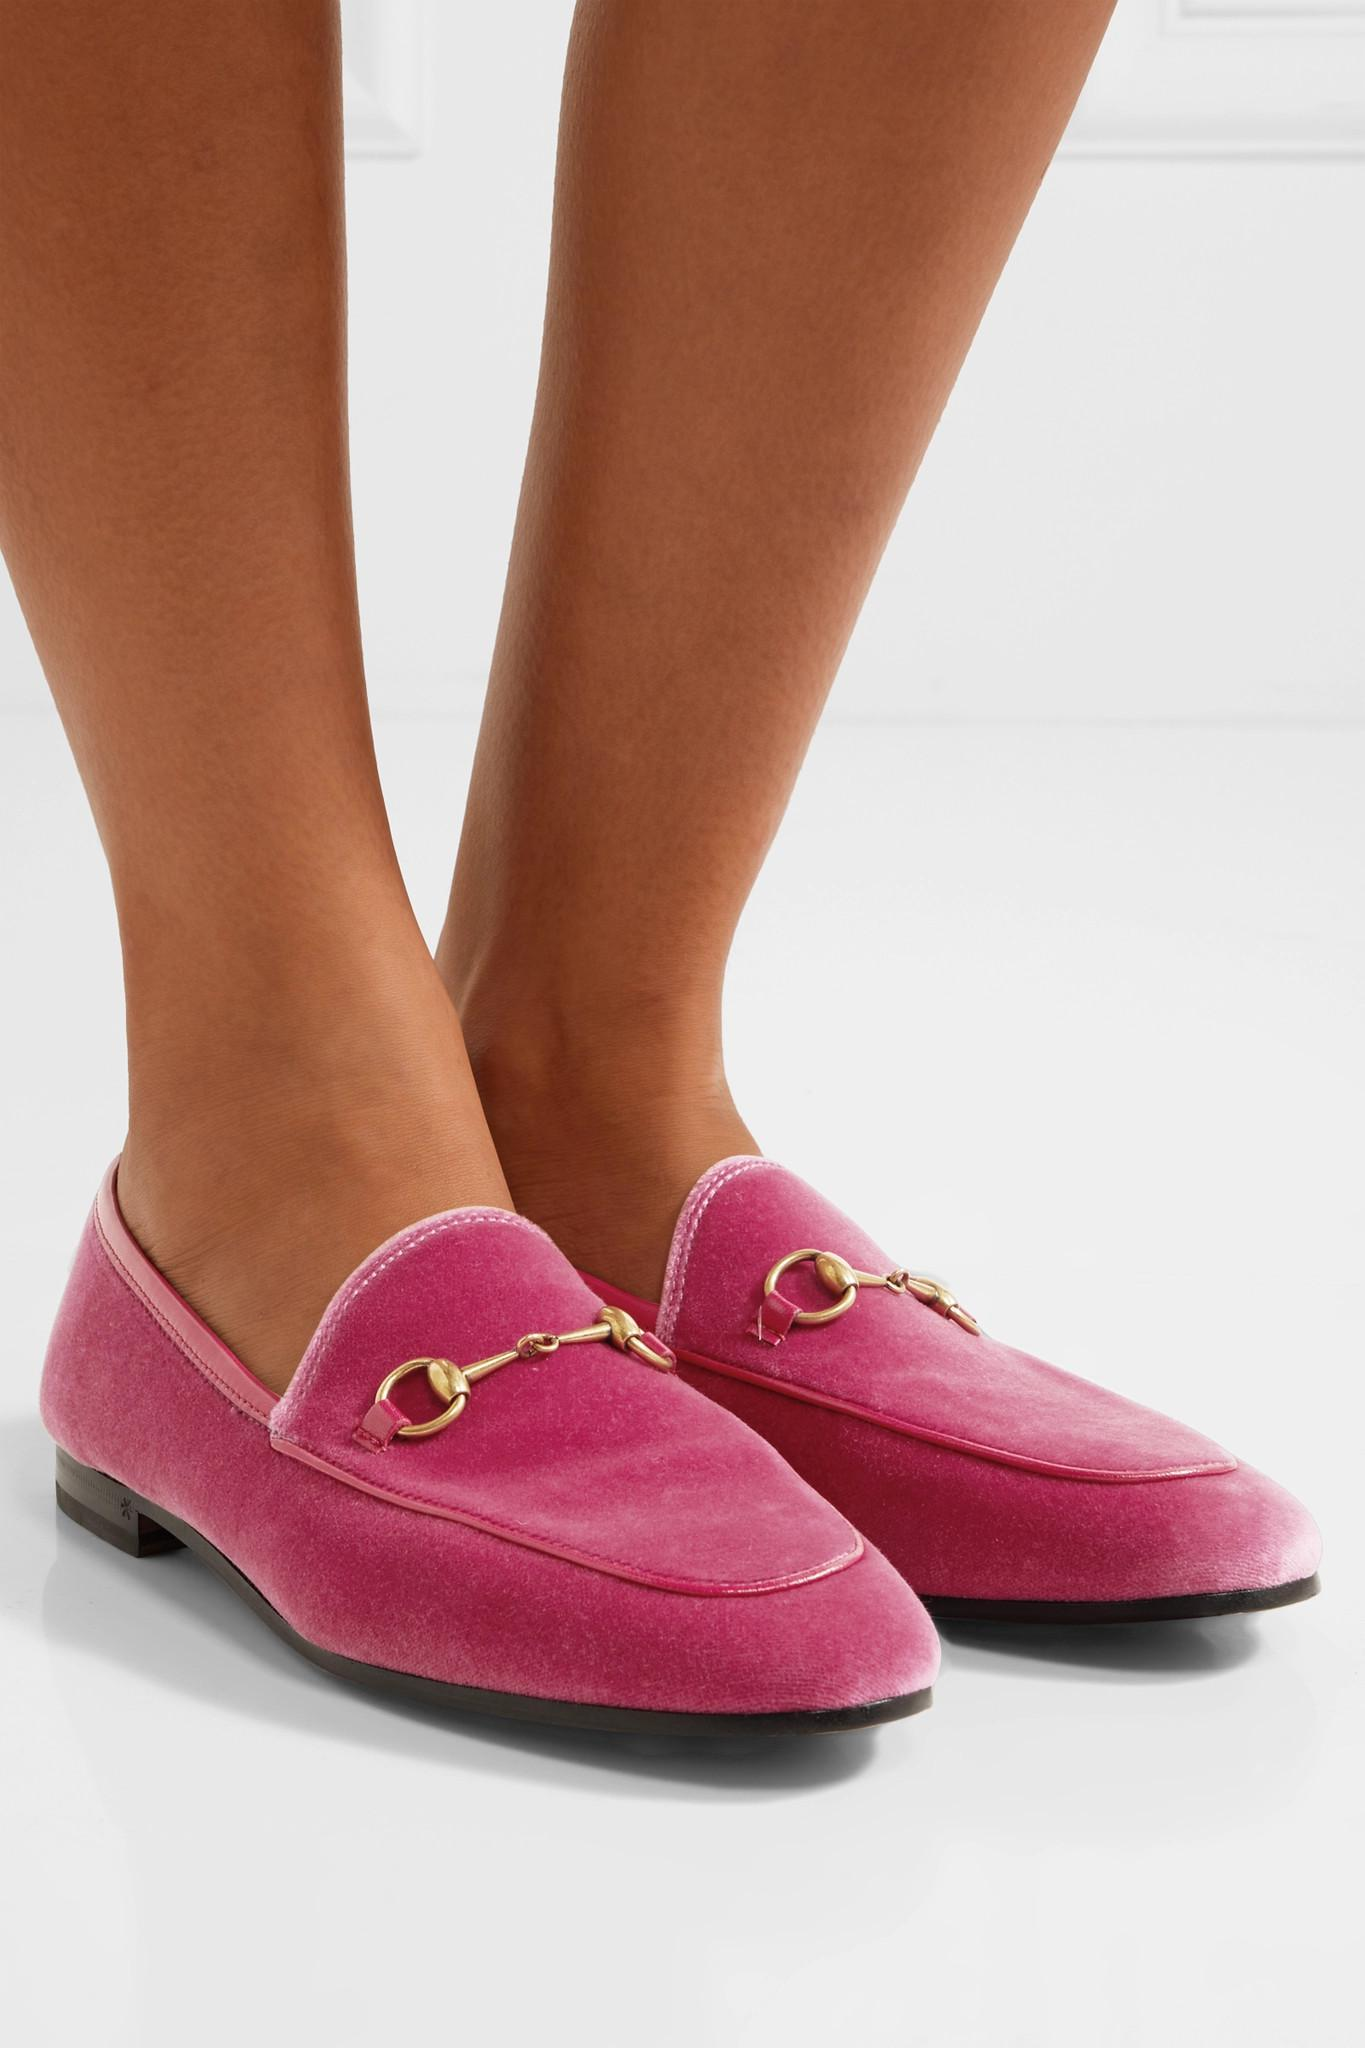 24e27601bb5 Gucci - Pink Jordaan Horsebit-detailed Leather-trimmed Velvet Loafers -  Lyst. View fullscreen